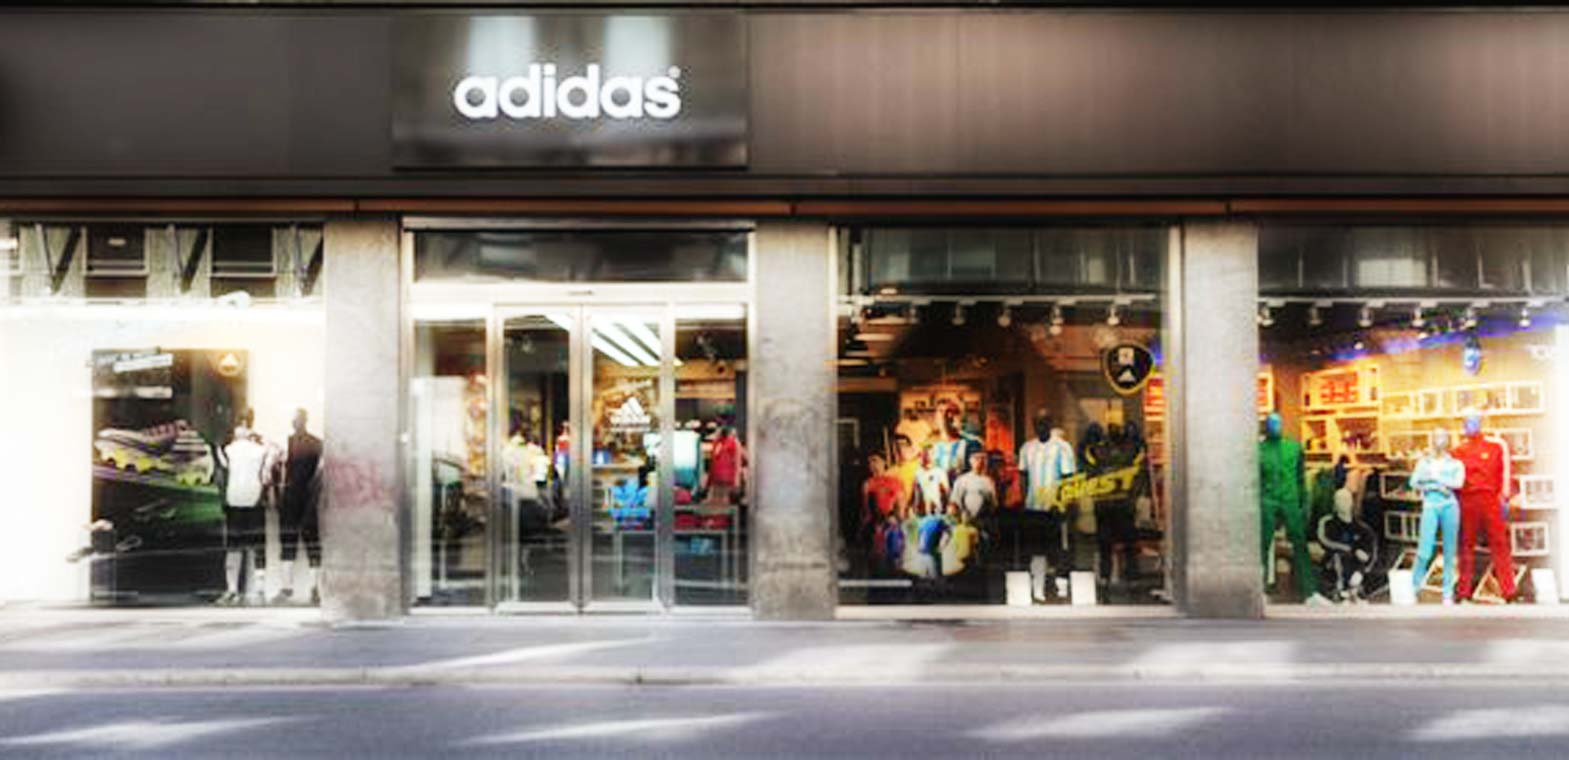 adidas official online shop for adidas shoes, clothing & accessories. Discover the newest adidas collections, Originals, Running, Soccer, Training & more.